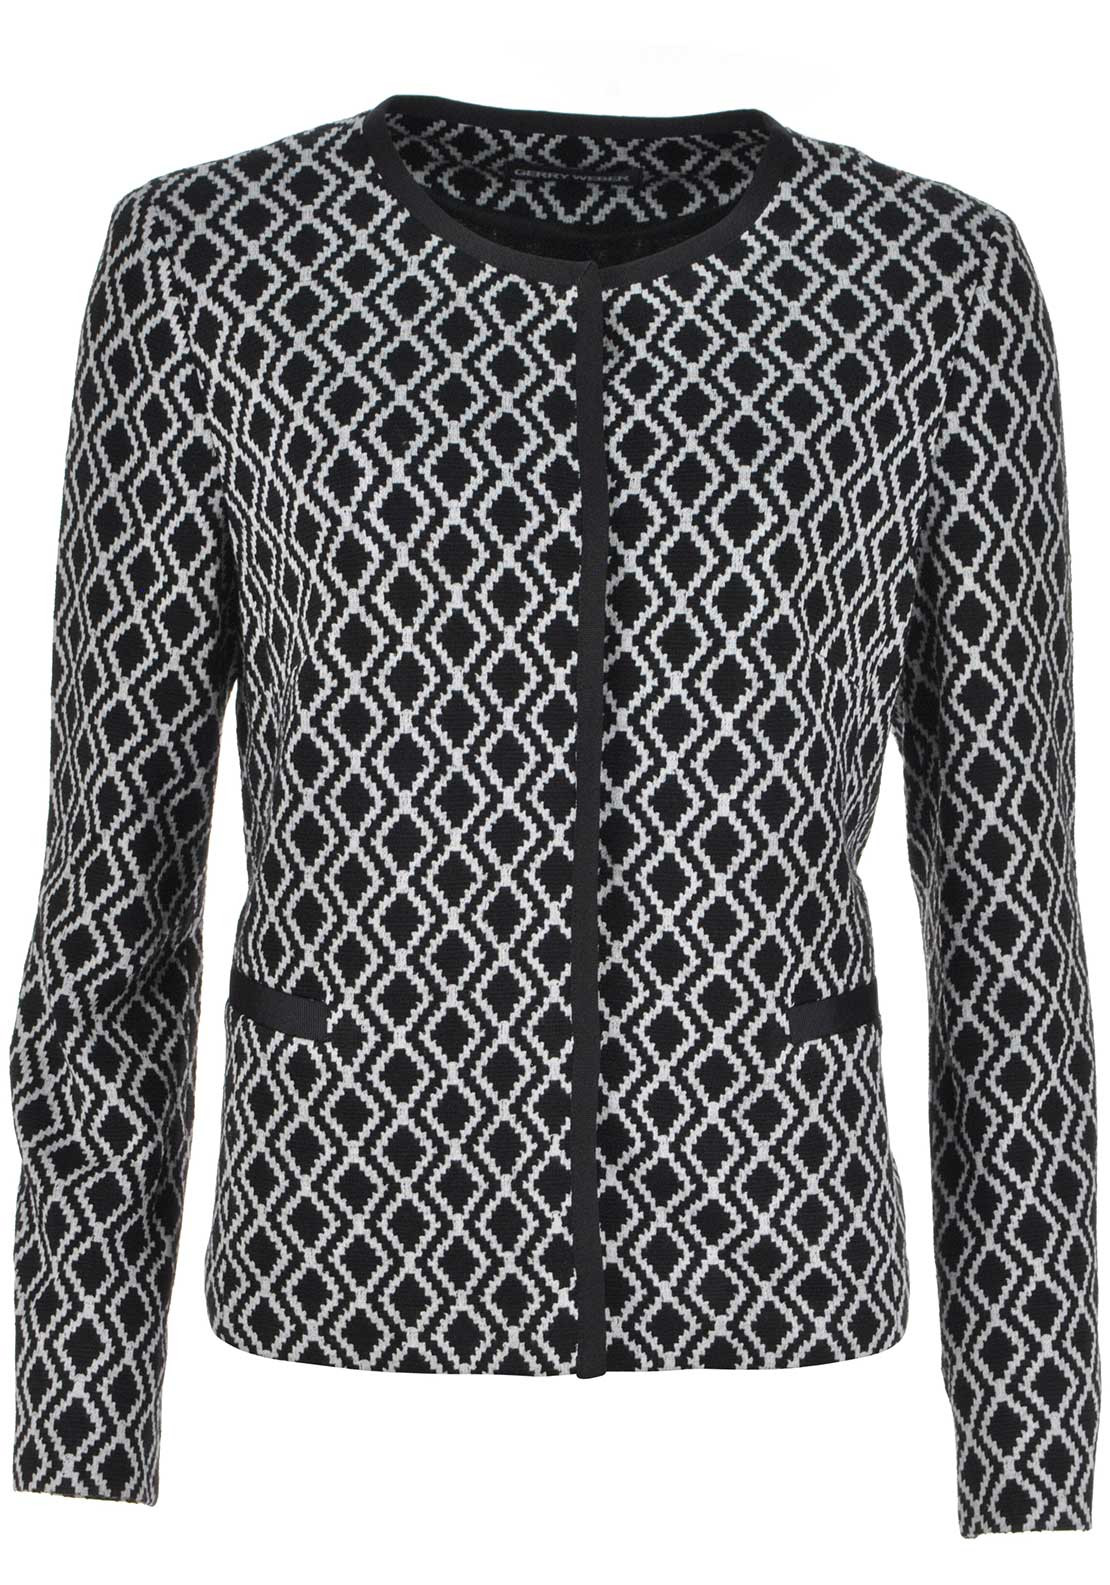 Gerry Weber Geometric Print Jersey Jacket, Black and Grey